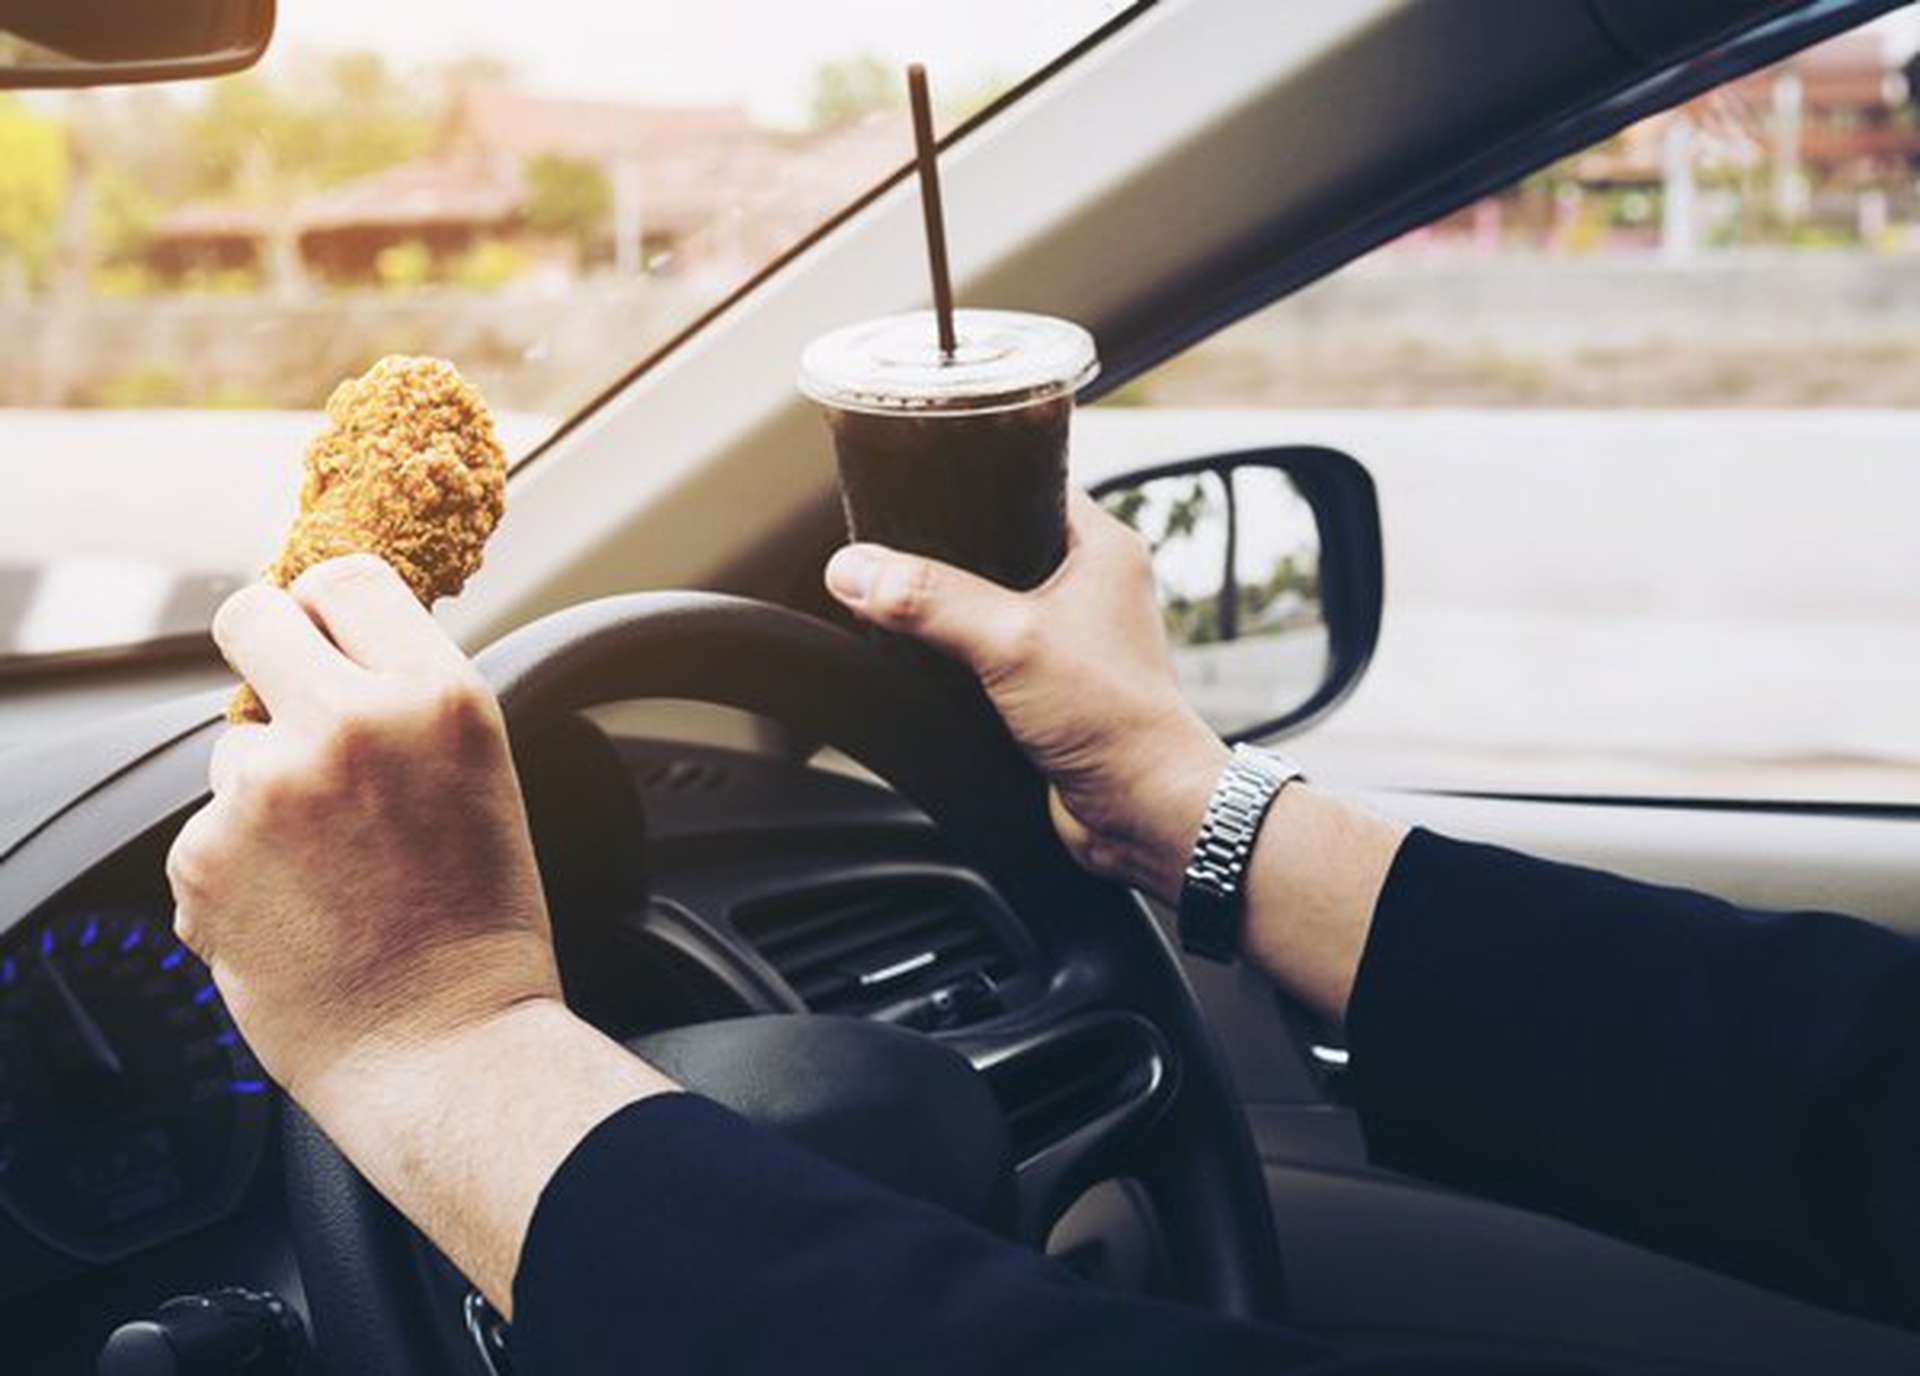 Eating and Drinking While Driving Can Be Distracting